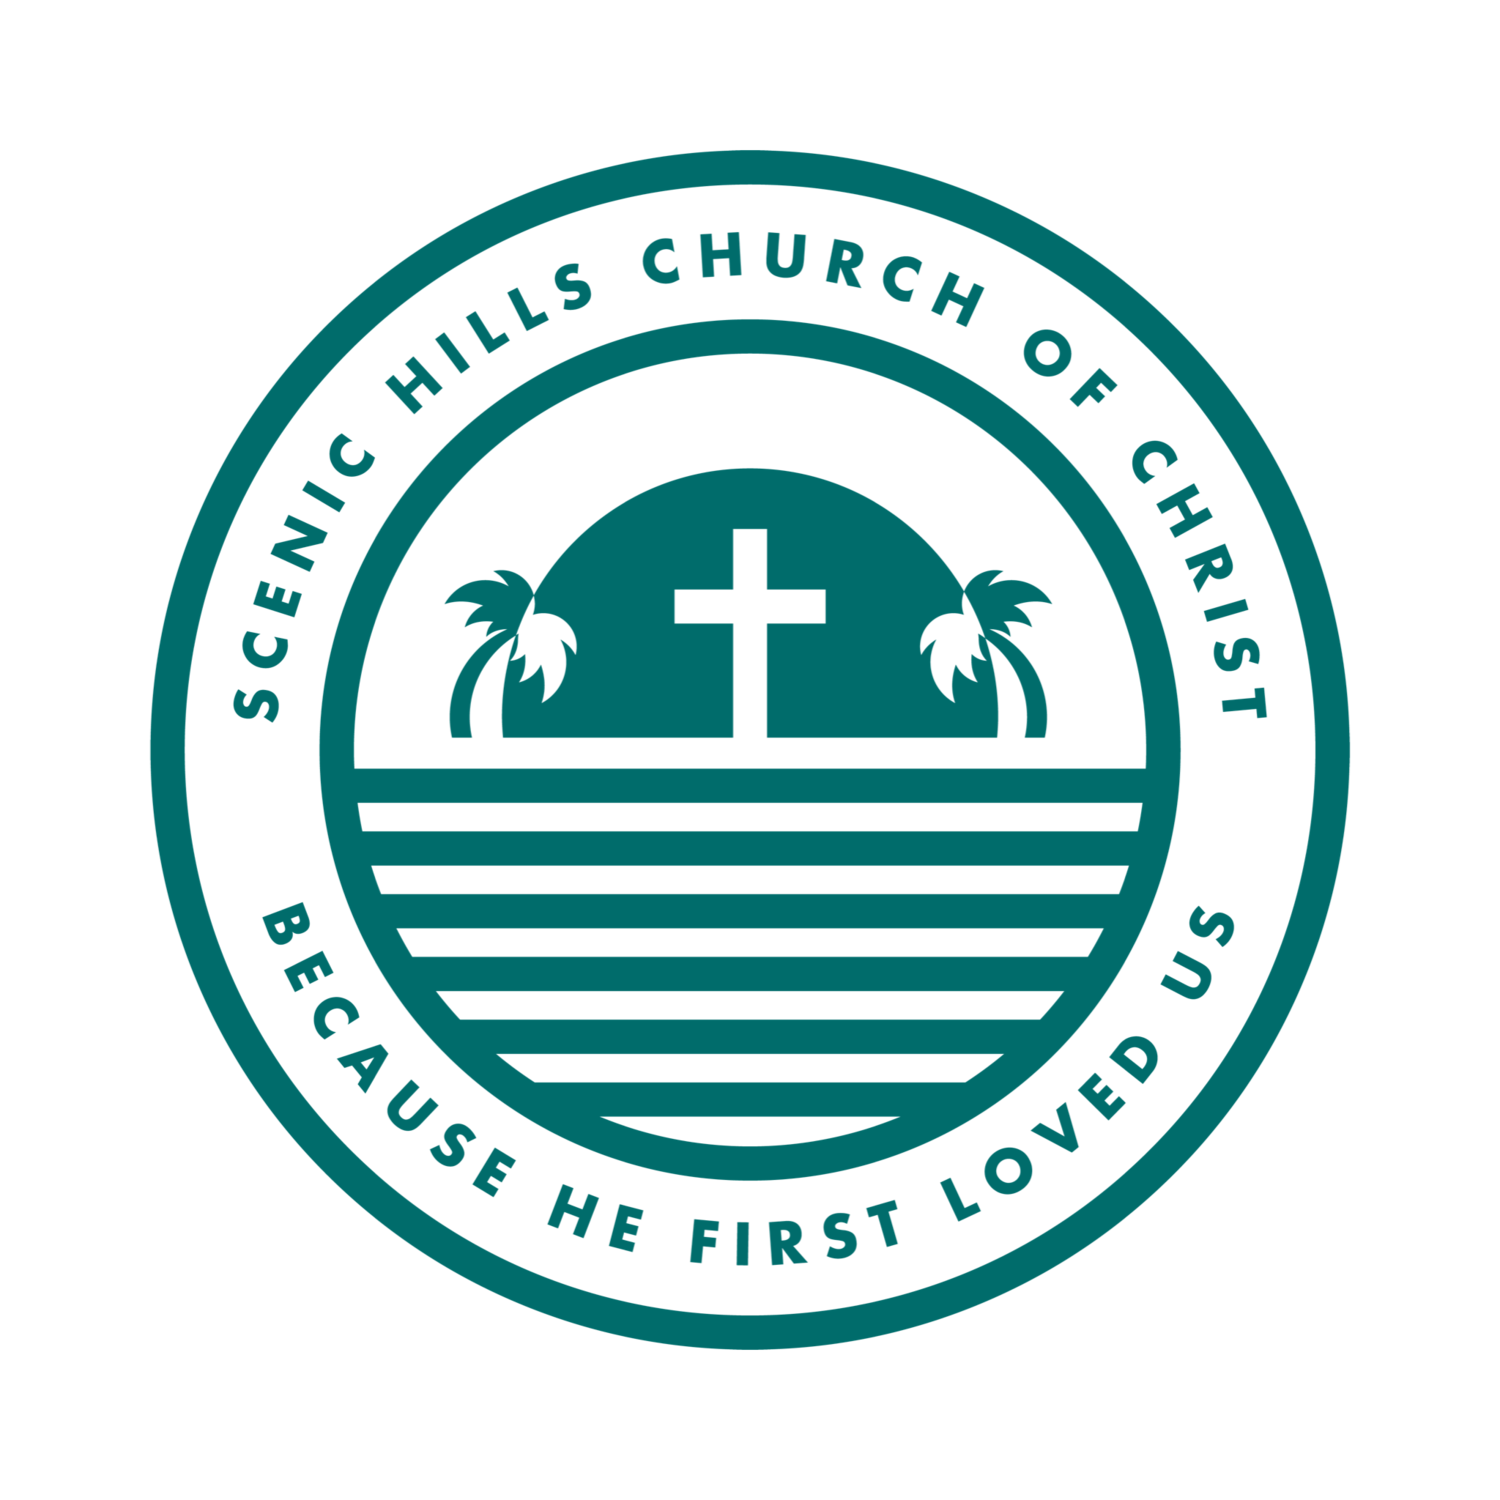 Scenic Hills Church of Christ